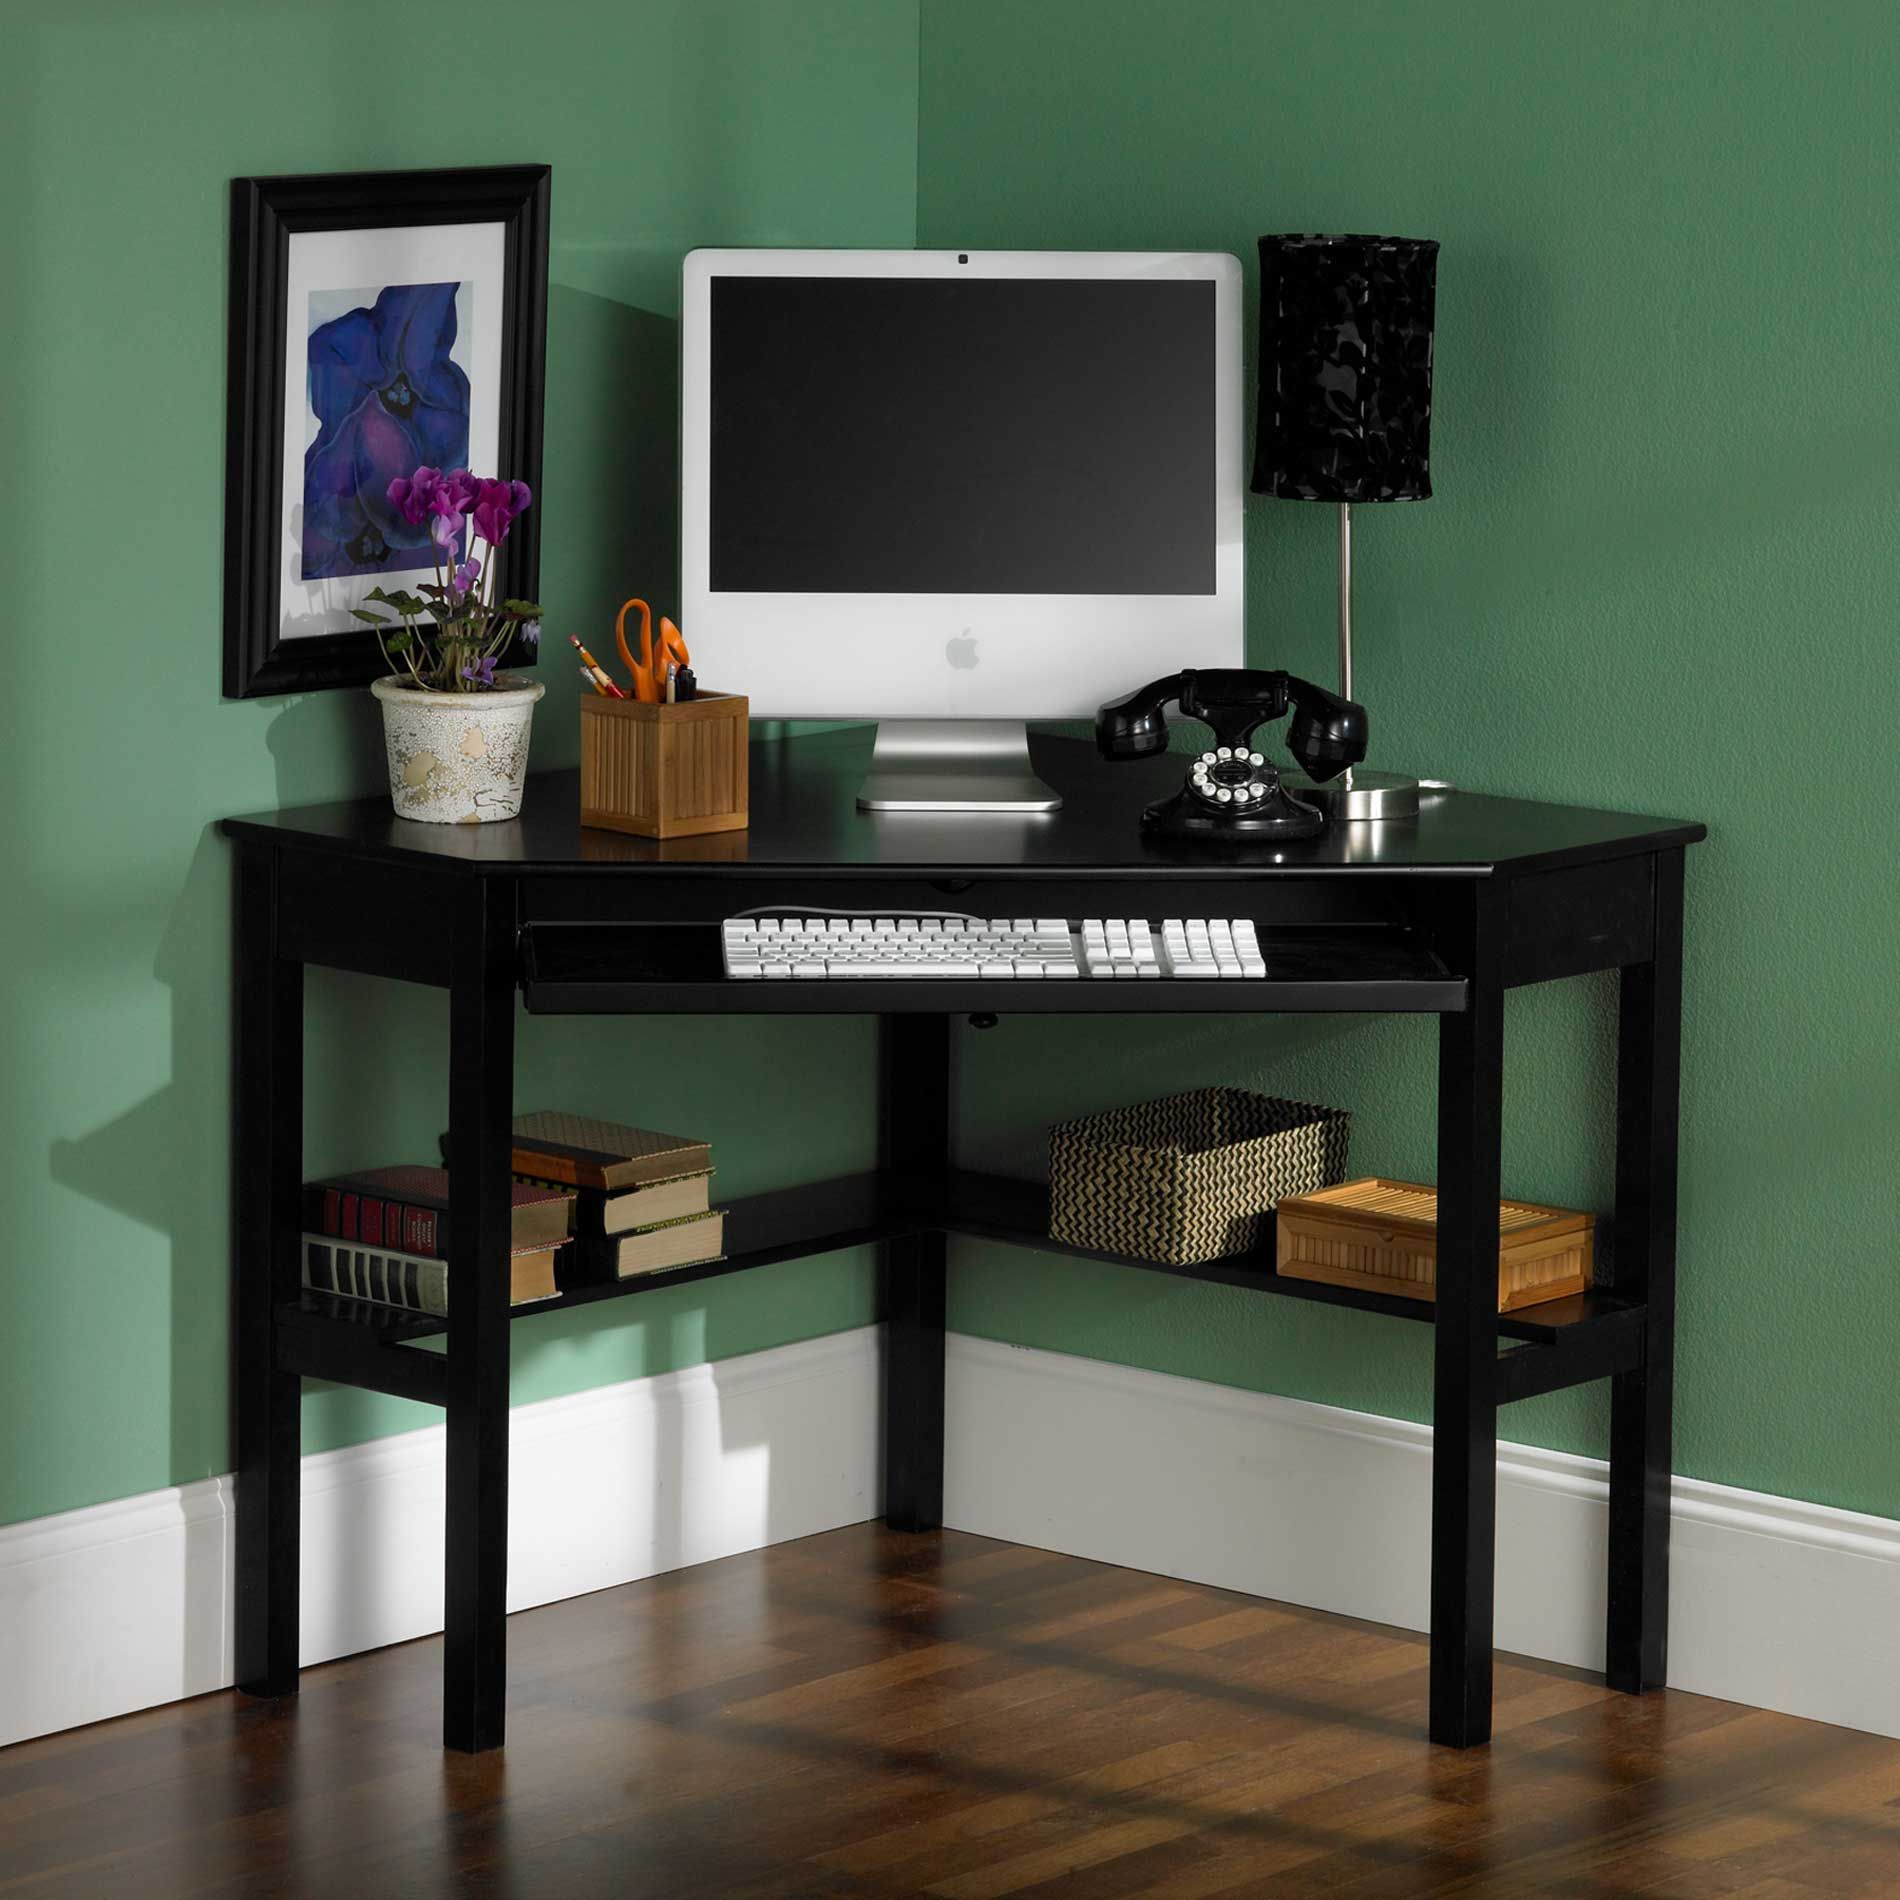 Hon Black Corner Computer Desk With Green Paint Wall For Model And - Hon computer table